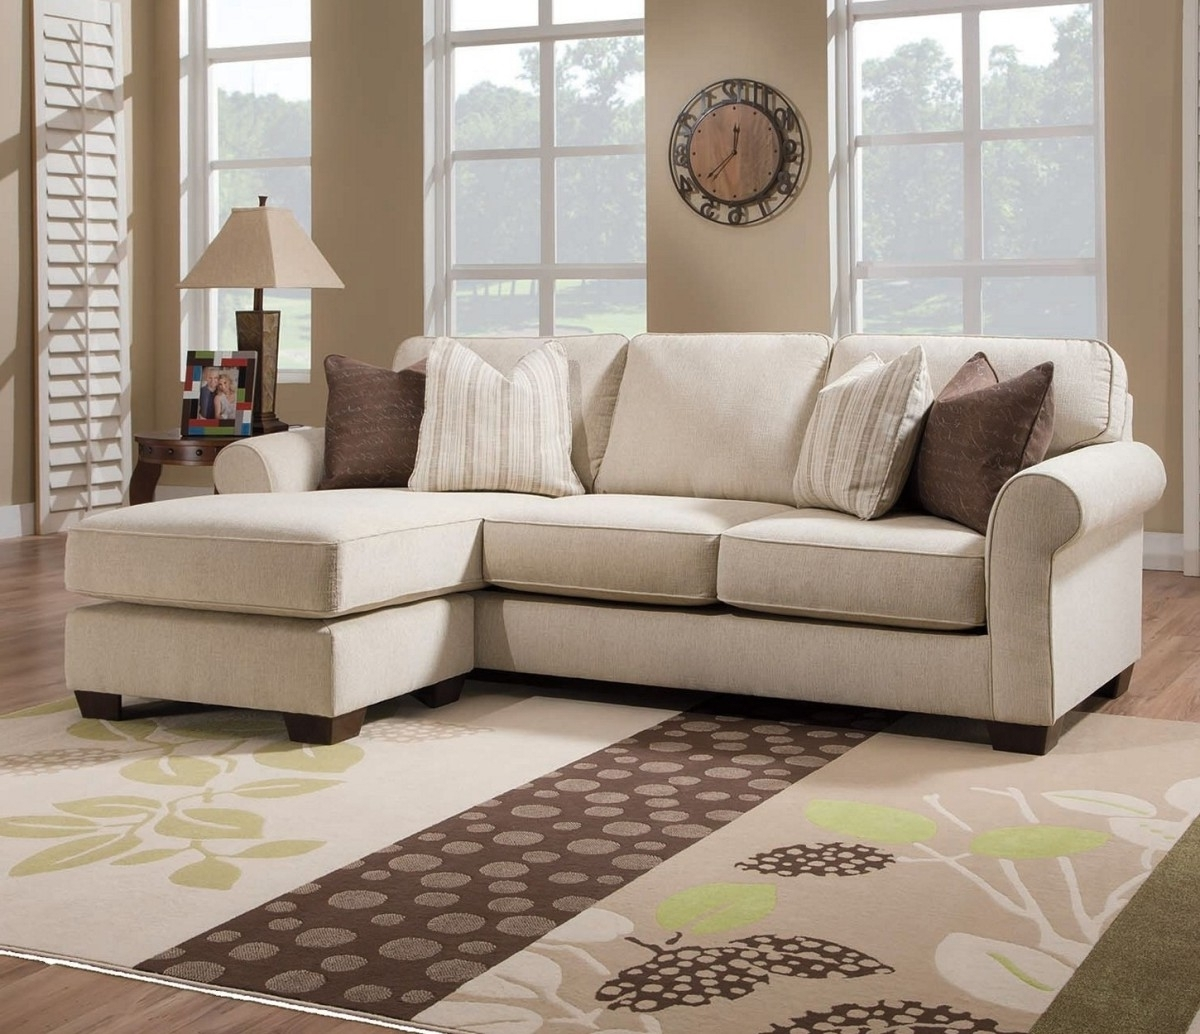 Well Liked Sofa High Back Inexpensive Sectional Sofas For Small Es